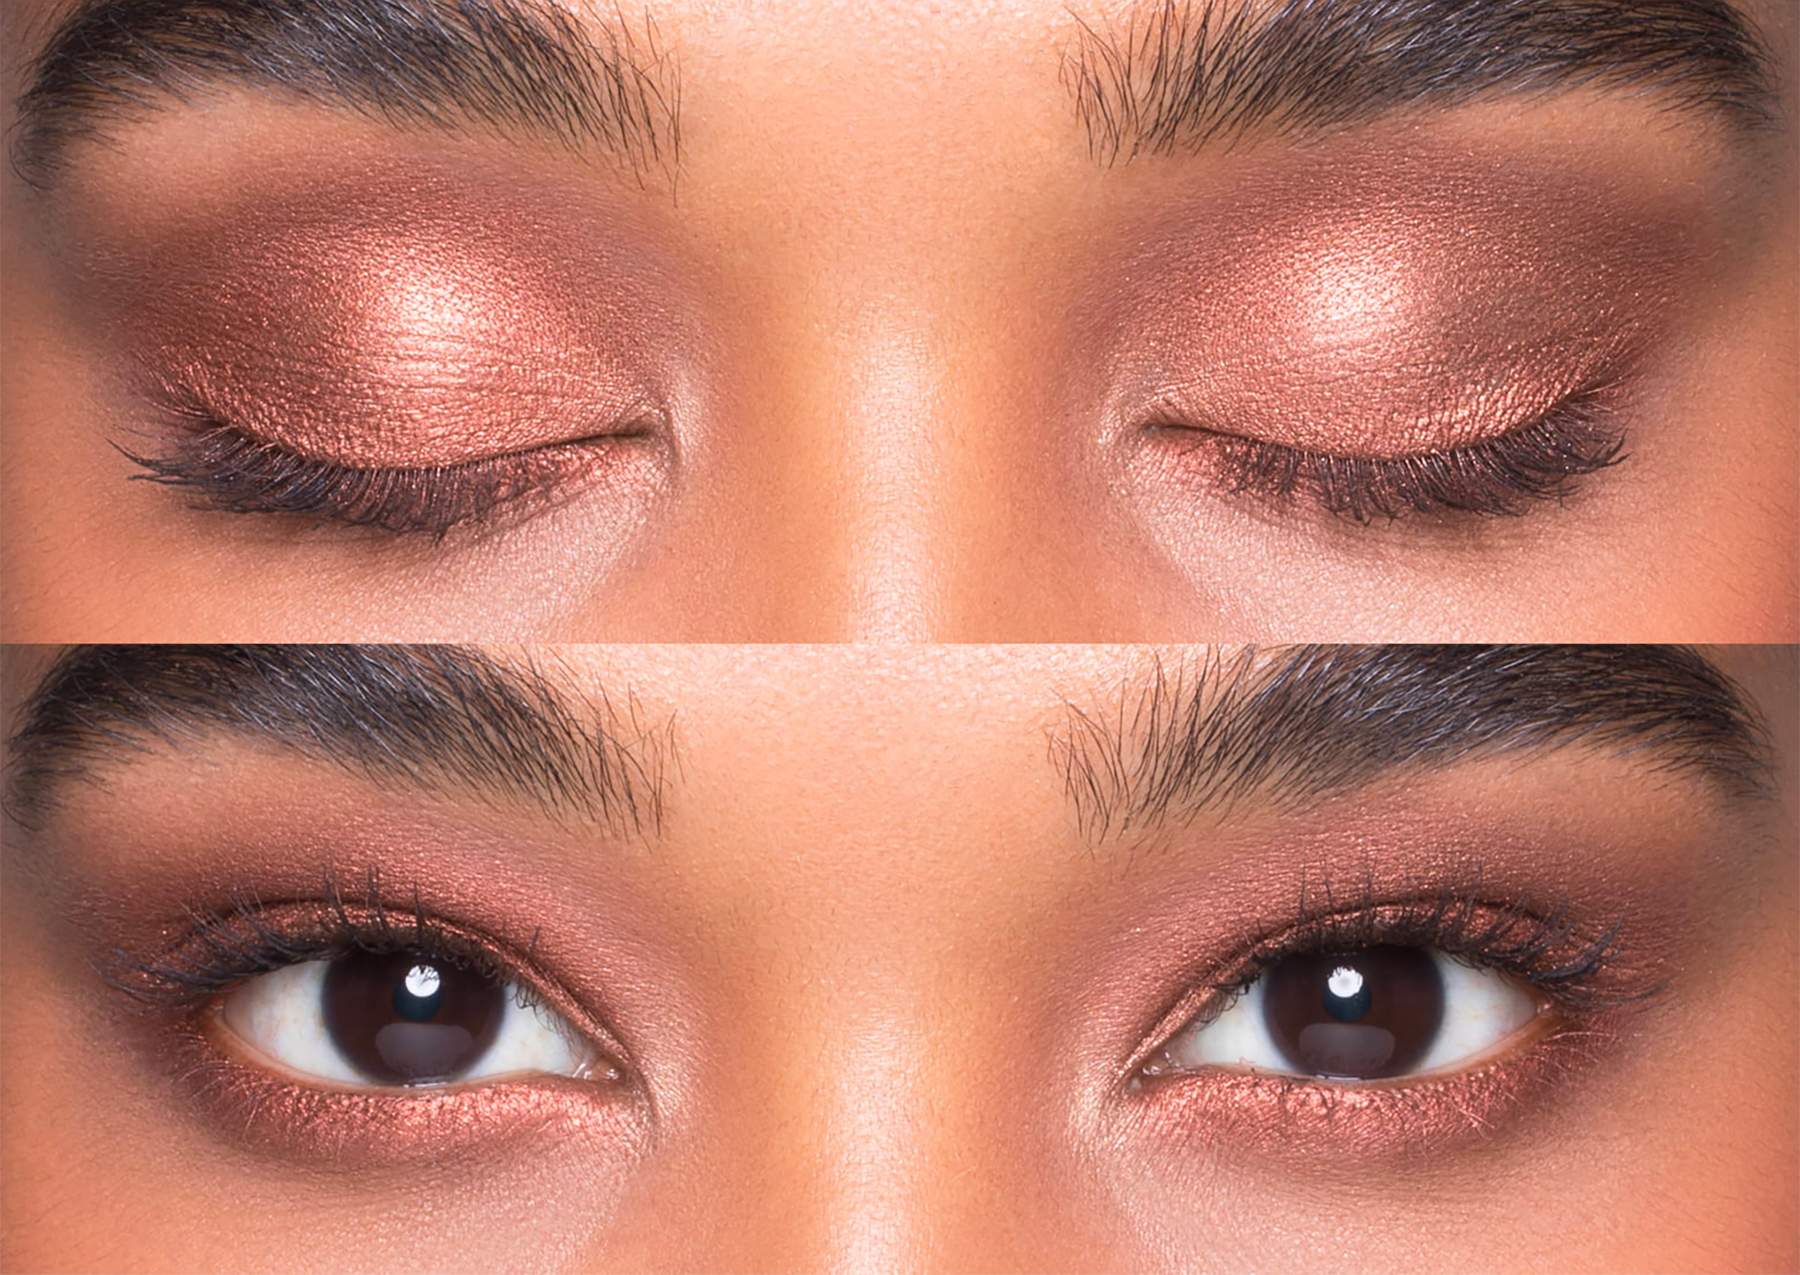 NARS-Skin-Deep-Eye-Palette-look-maquillage